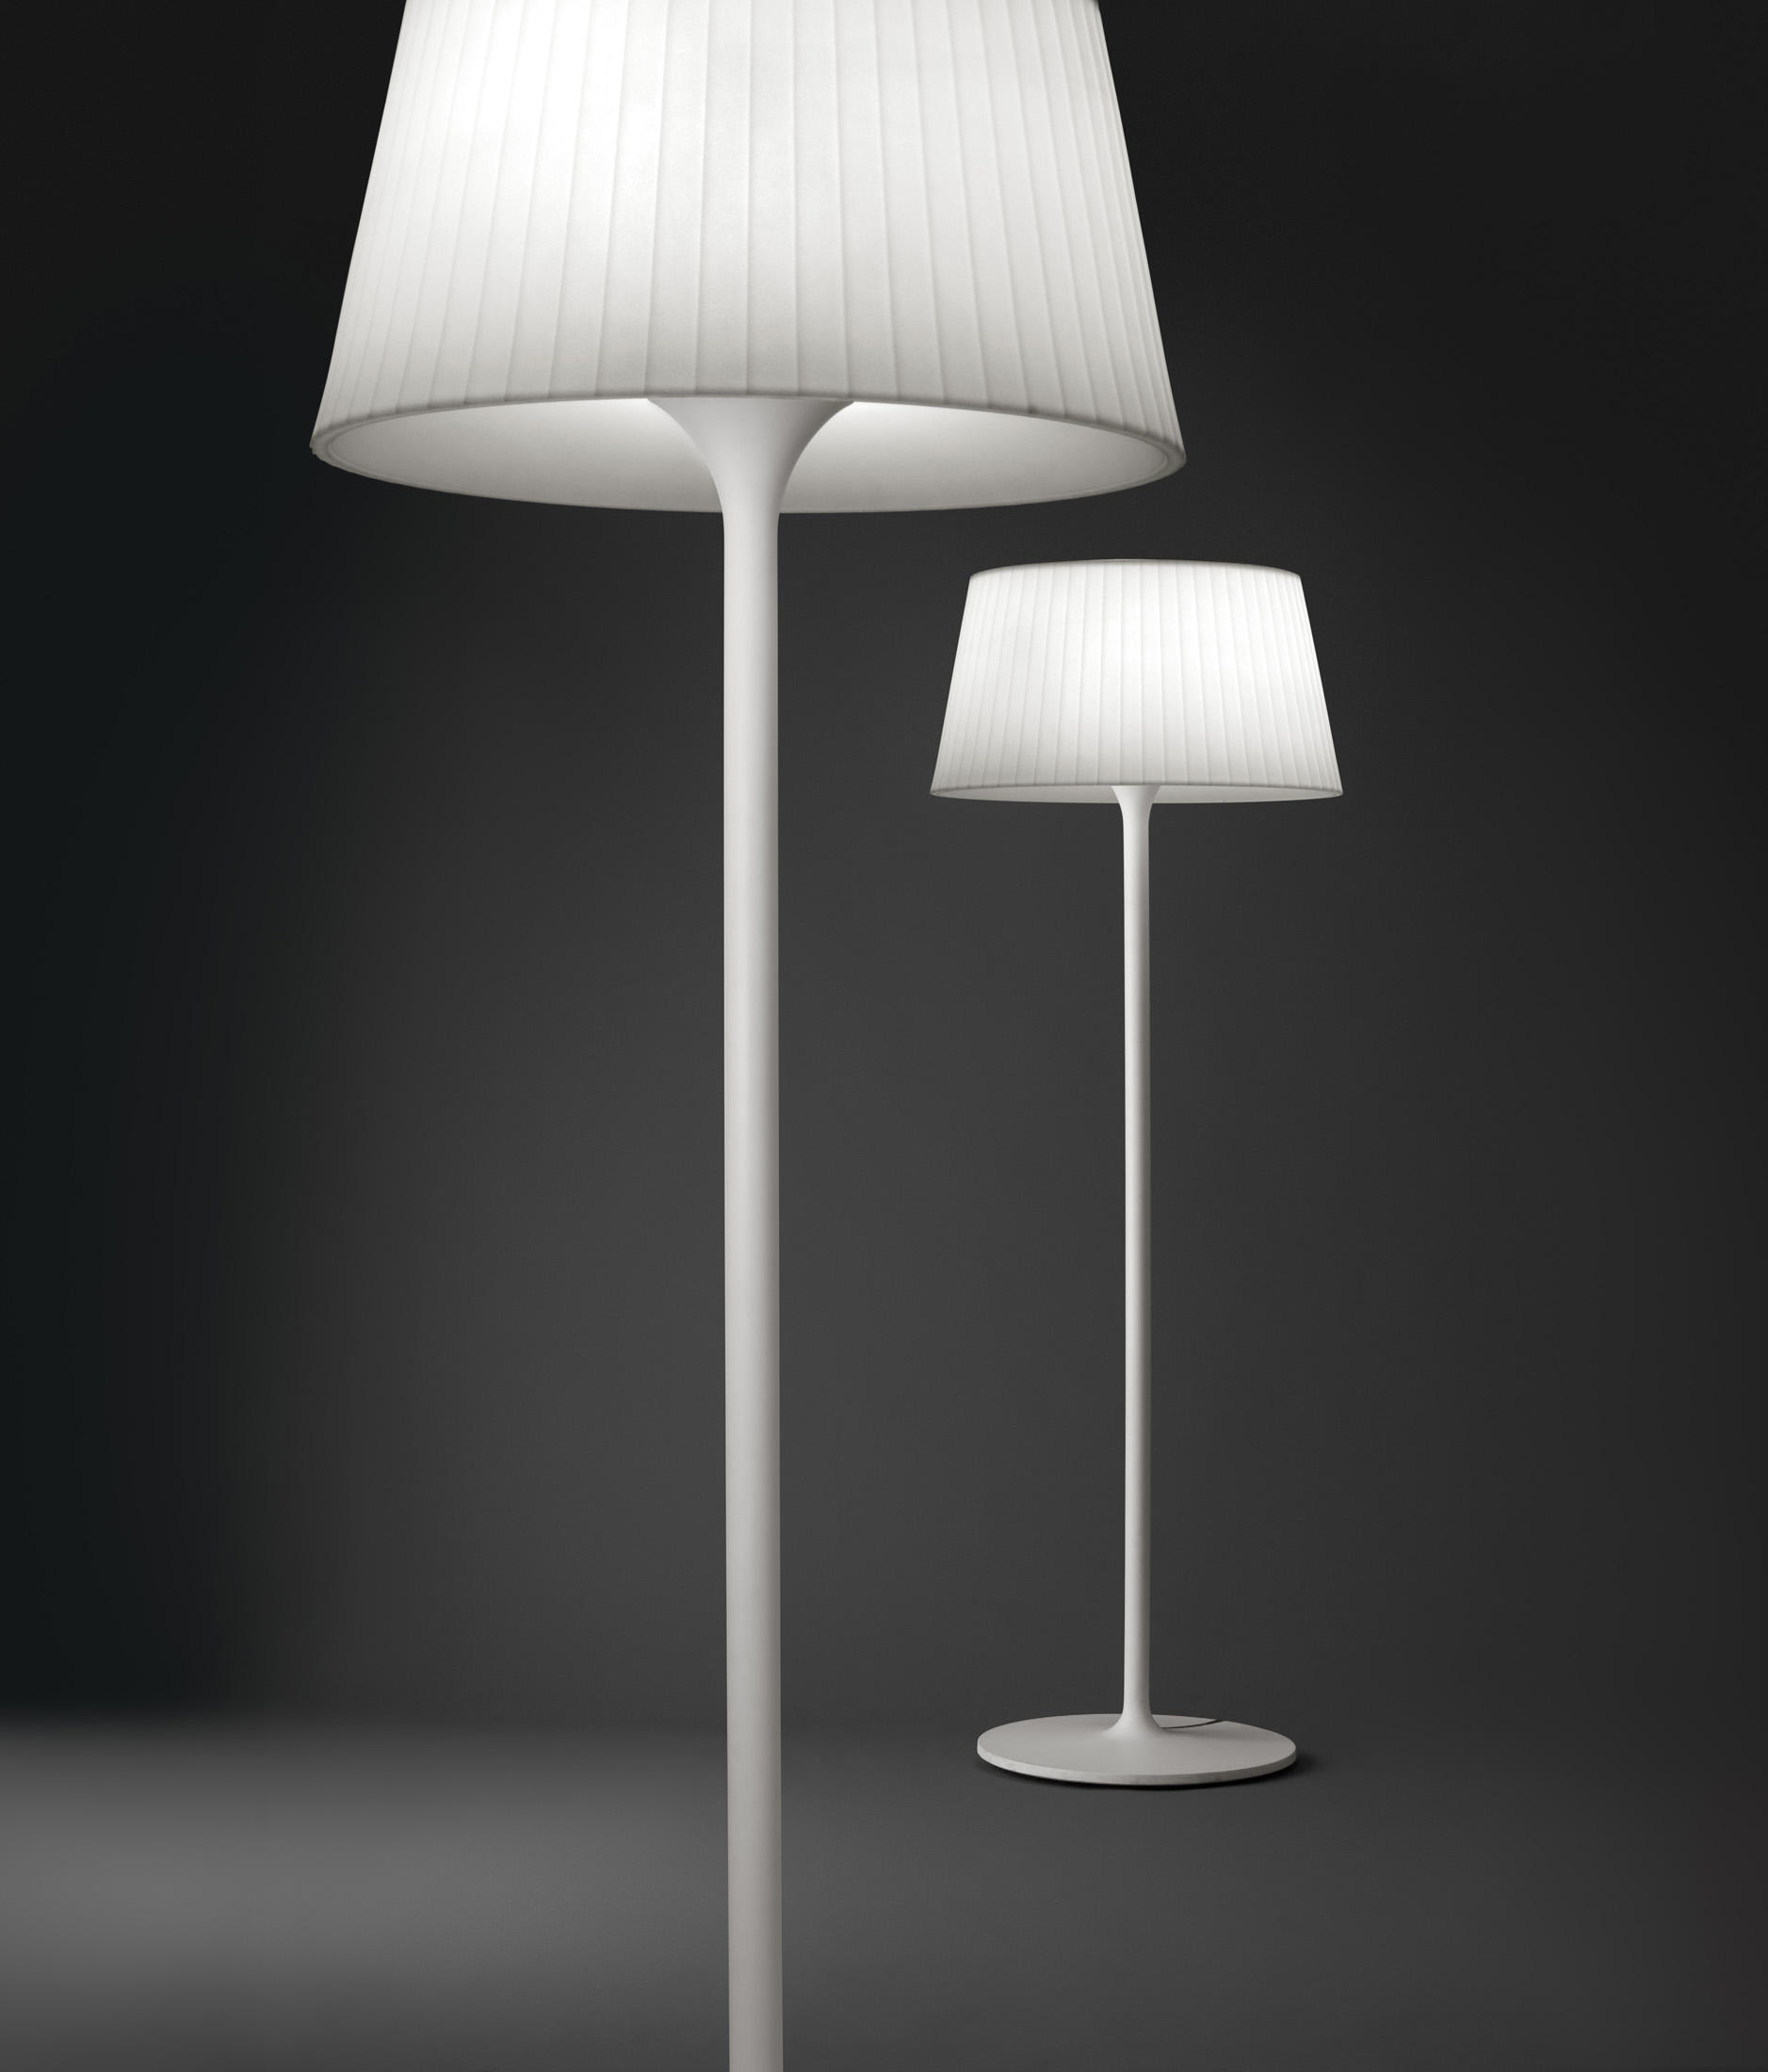 Ultra Modern Table Lamps Plis Outdoor 4035 Floor Lamp Garden Lighting From Vibia